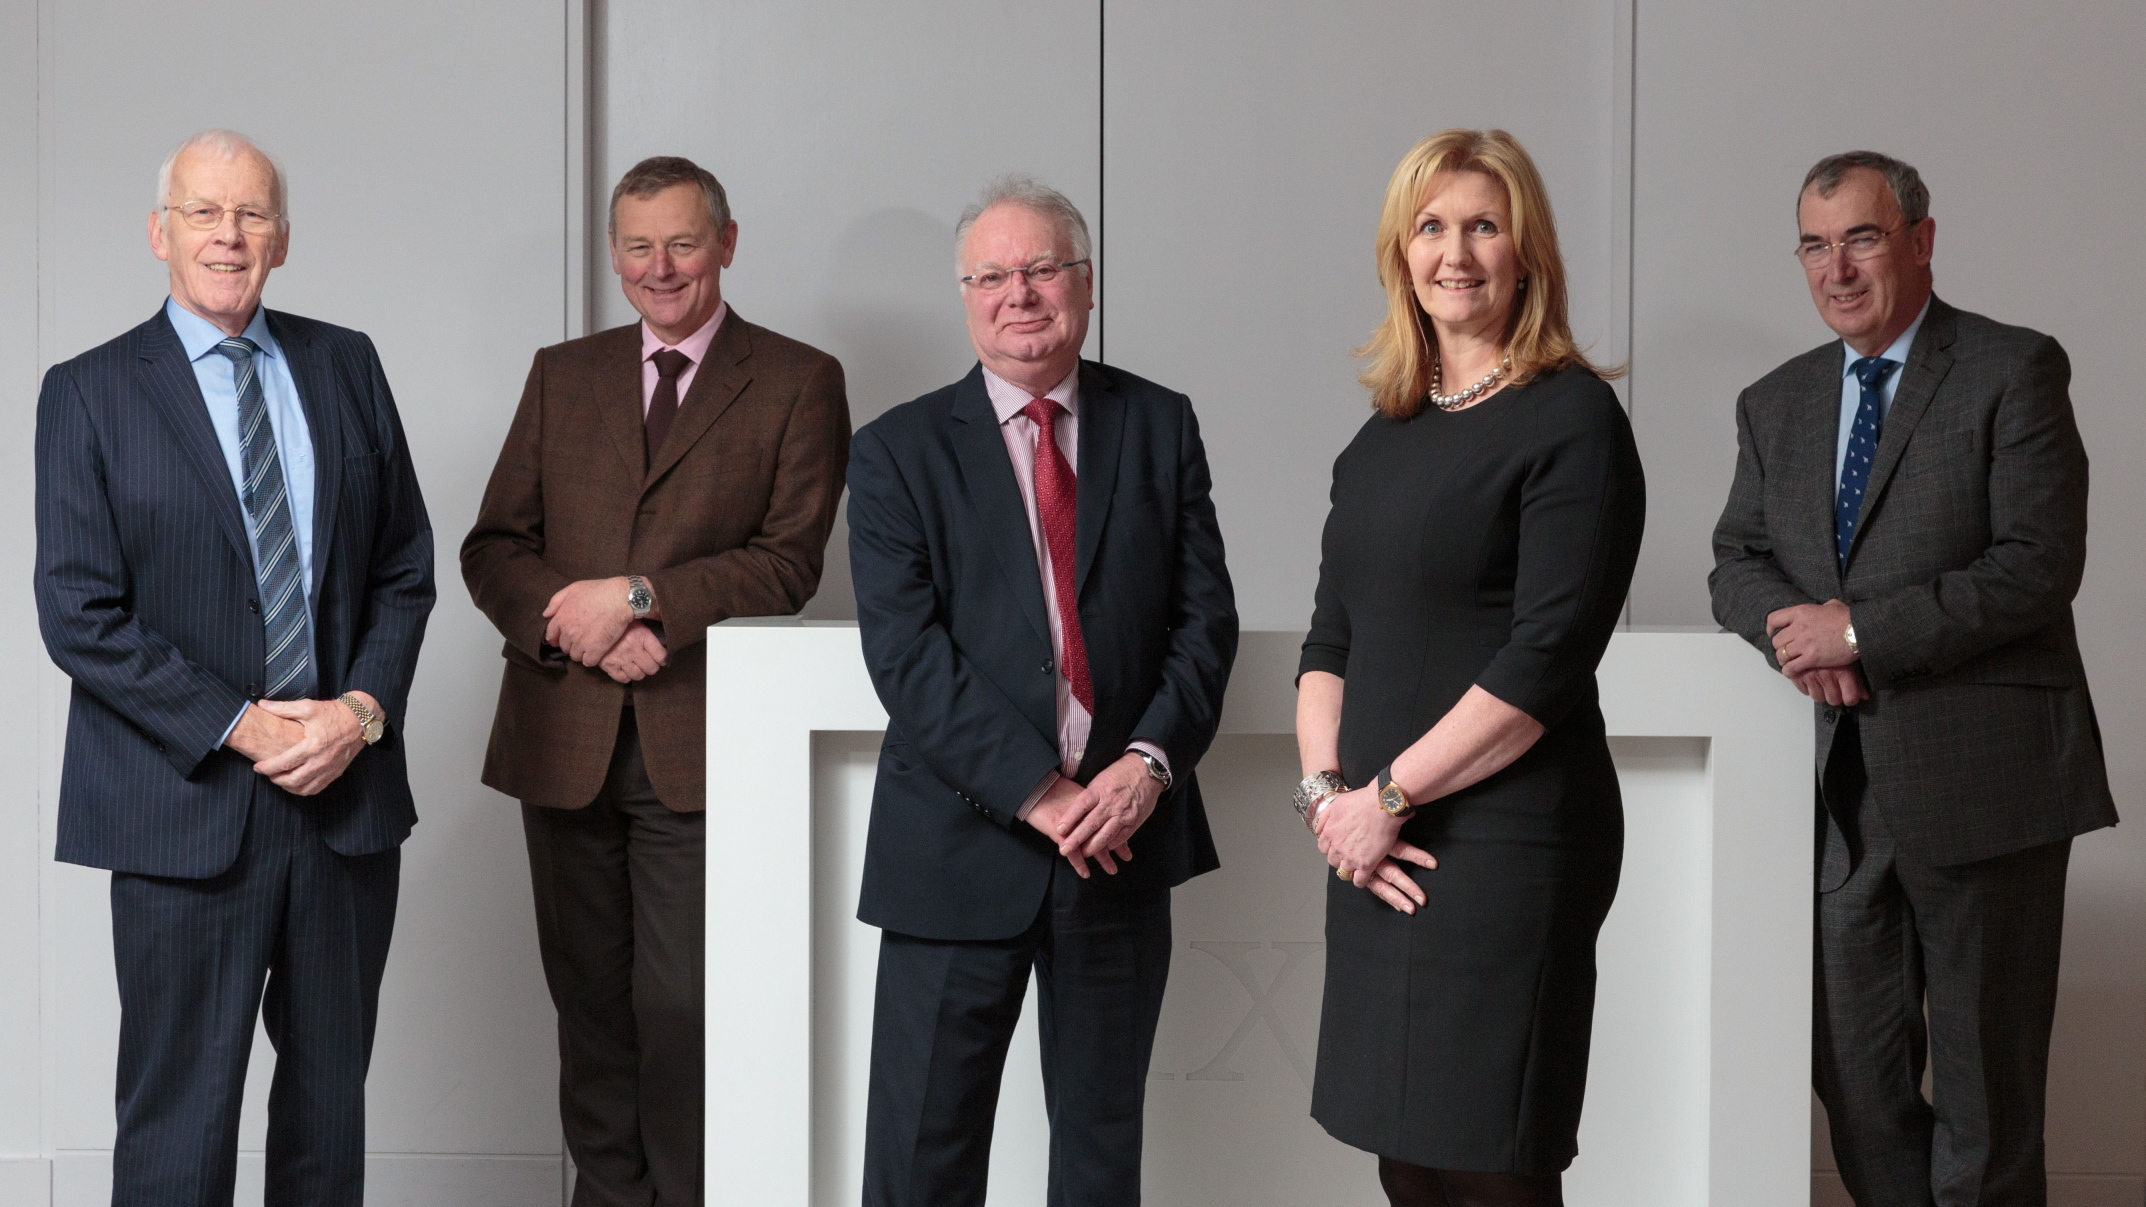 Opportunity North East board members Sir Ian Wood, Colin Crosby, Professor Stephen Logan, Jennifer Craw and Patrick Machray.